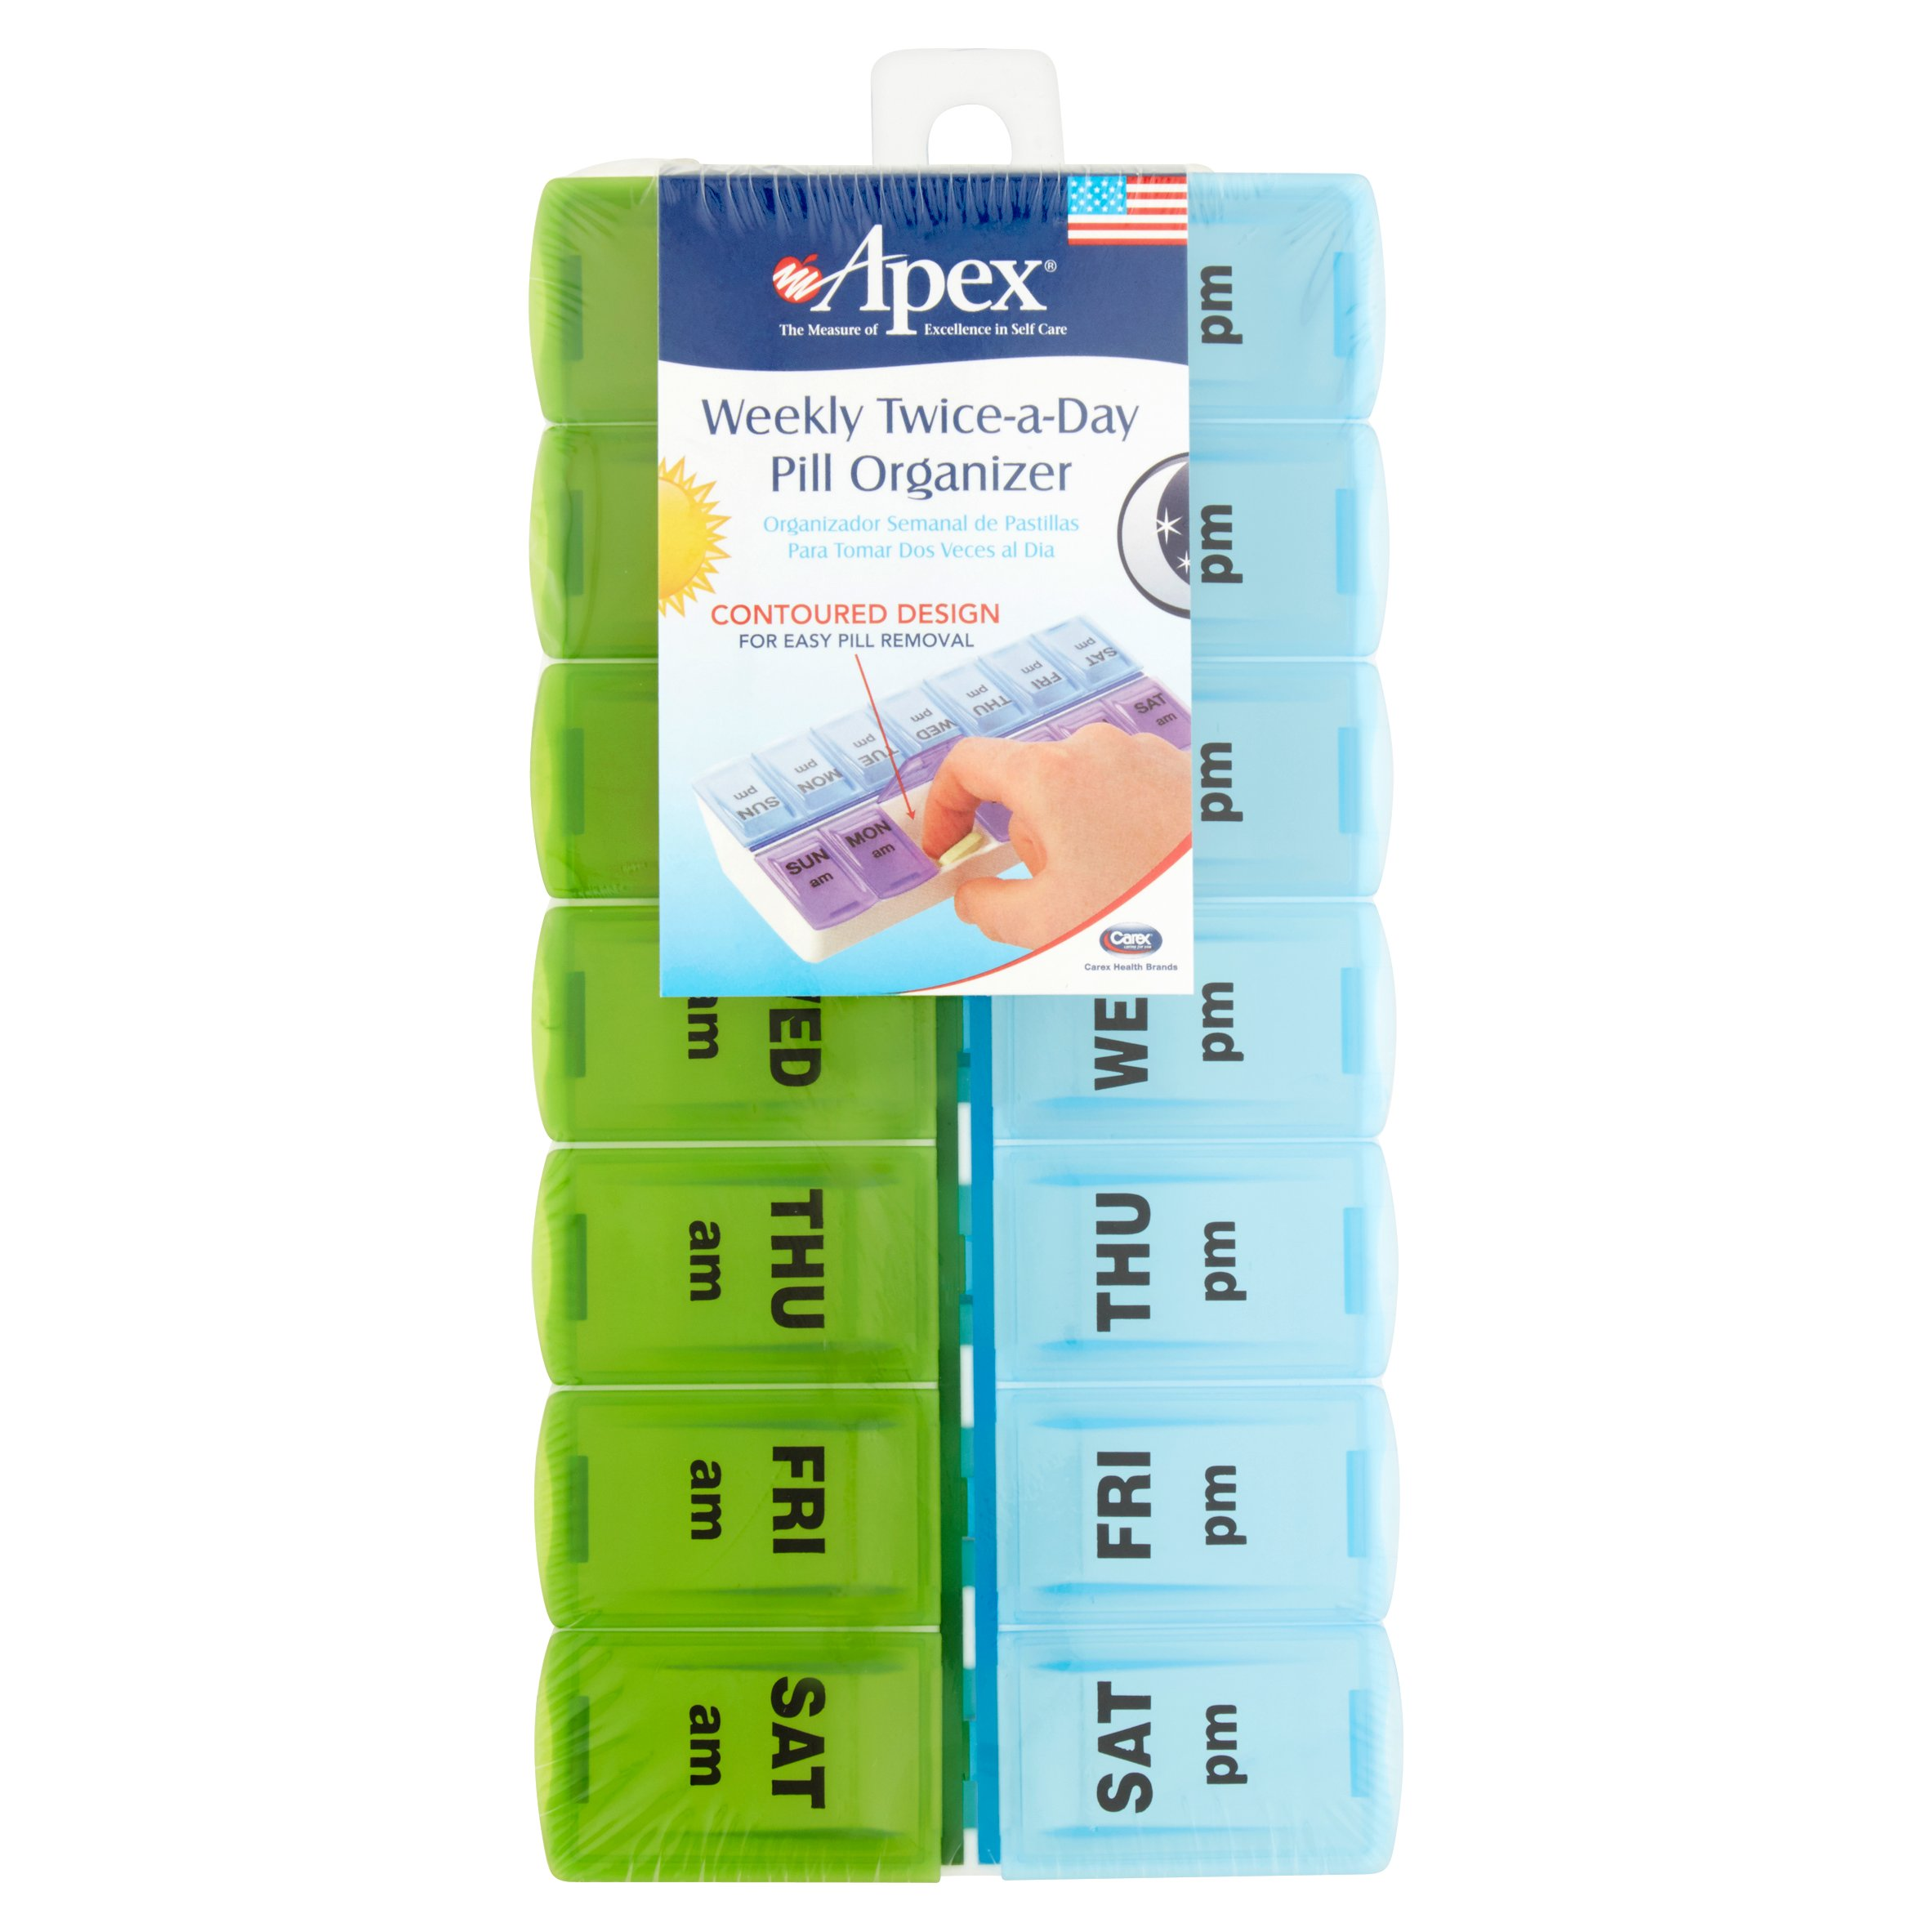 Apex Twice A Day Pill Organizer - AM/PM 7 Day Pill Box, Blue and Green